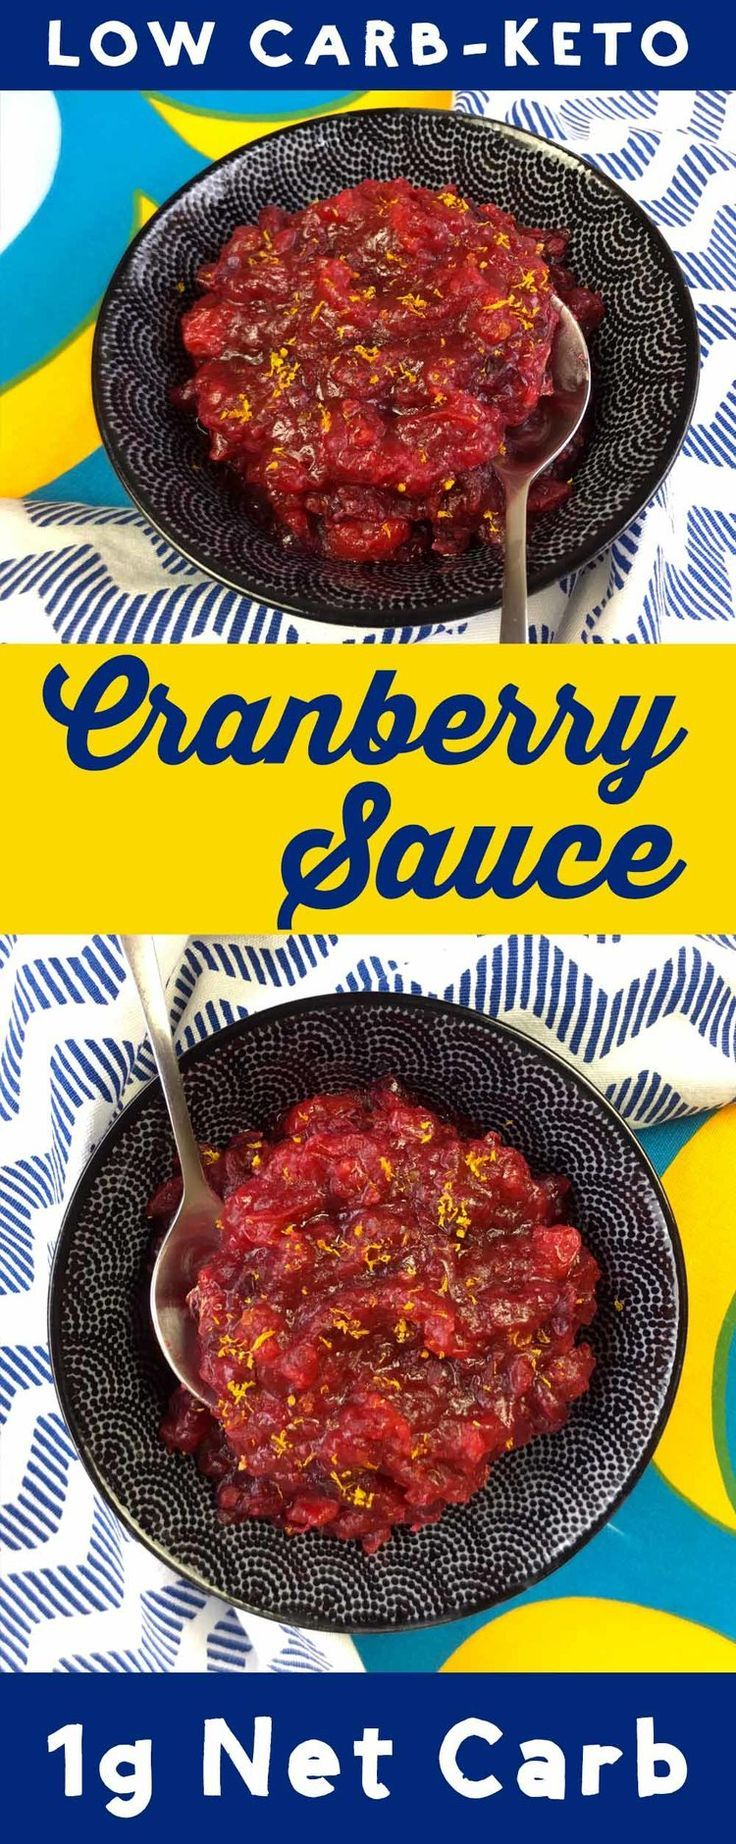 This recipe for Low Carb Orange Cranberry Sauce is Keto, Paleo, THM, Atkins, Banting, LCHF, Sugar Free and Gluten Free It's the perfect accompaniment on turkey day, or anytime you want a treat.  #Keto #paleo #banting #diet #GlutenFree #cranberry